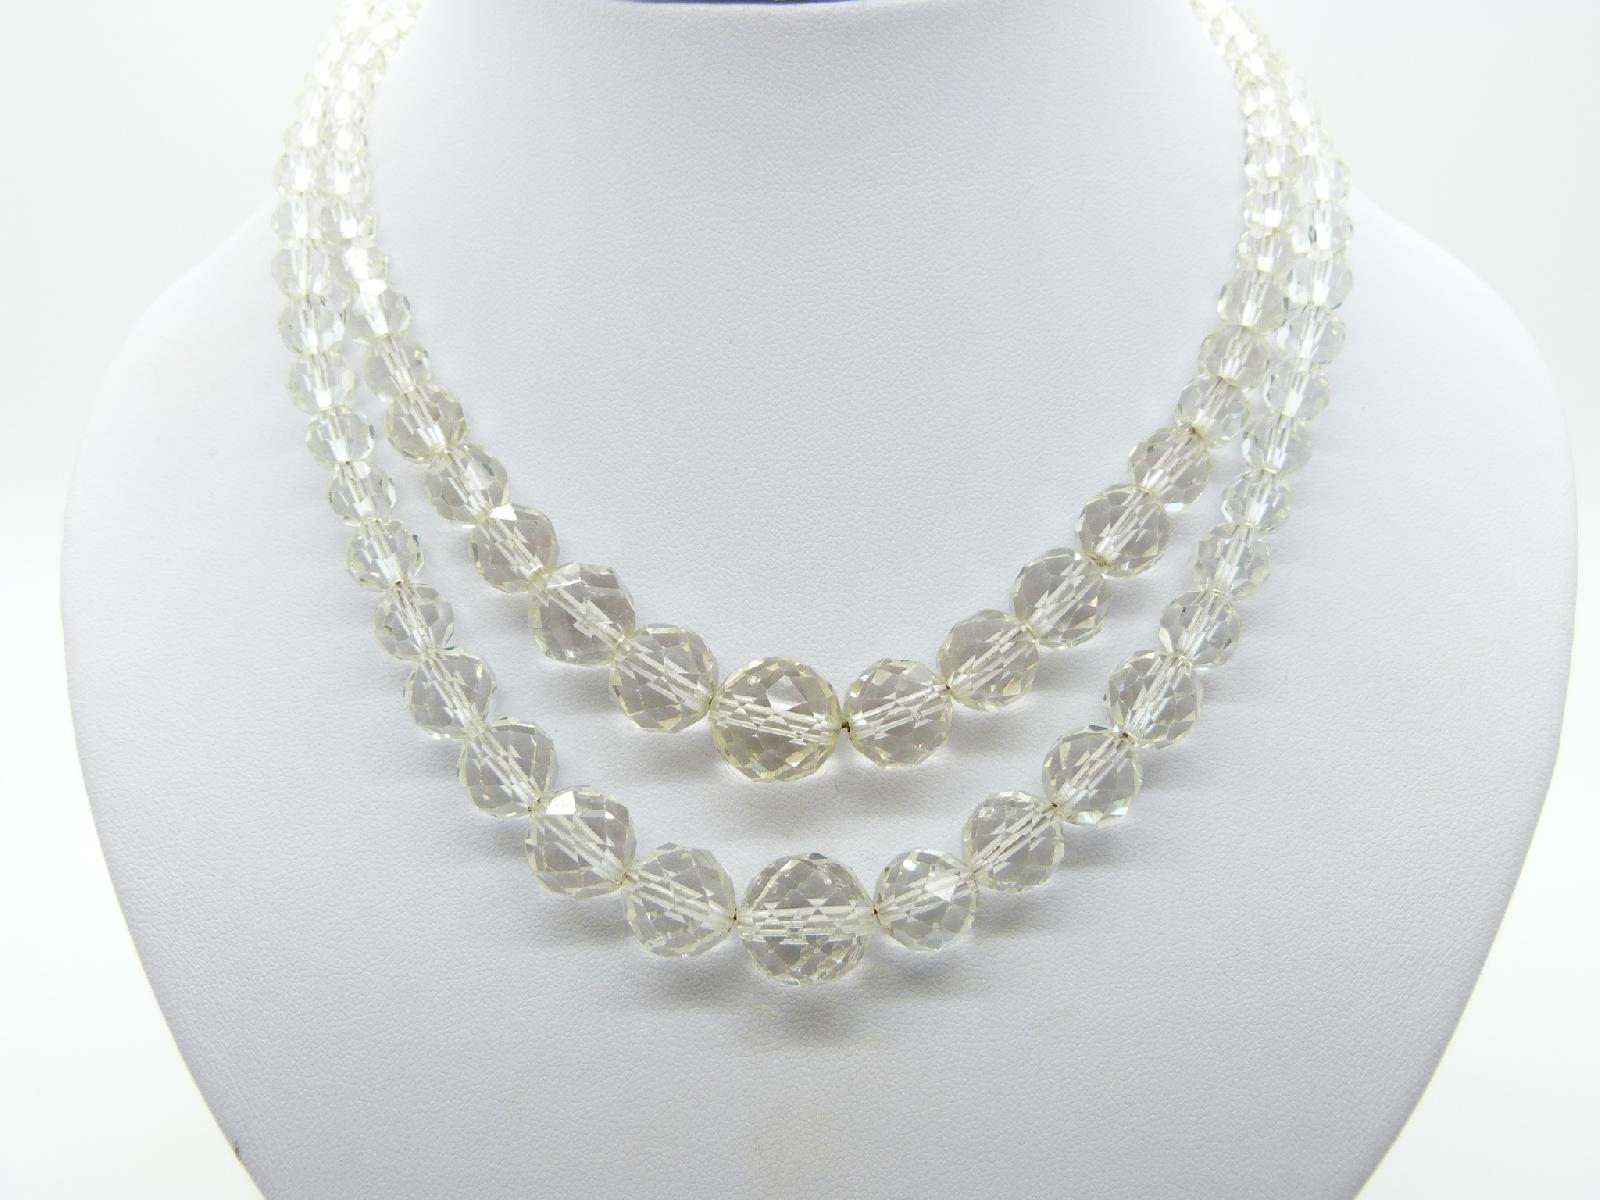 £30.00 - Vintage 30s Stunning Quality Two Row Crystal Glass Faceted Bead Necklace 47cms